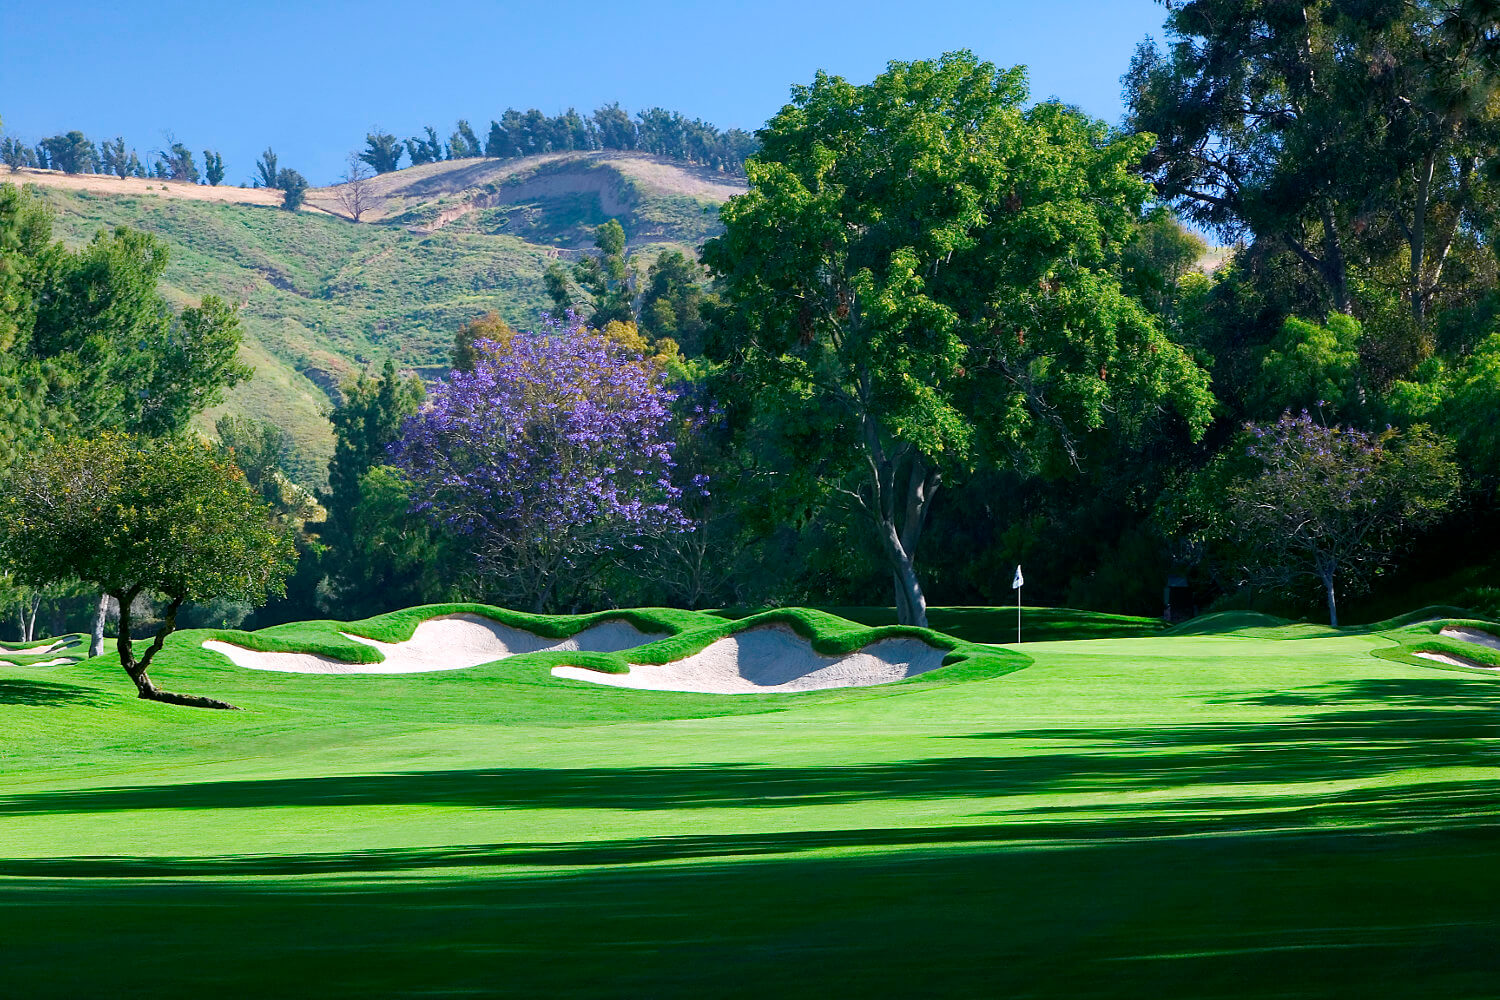 The Saticoy Club Undergoing Multi-Phase Golf Course Renovation